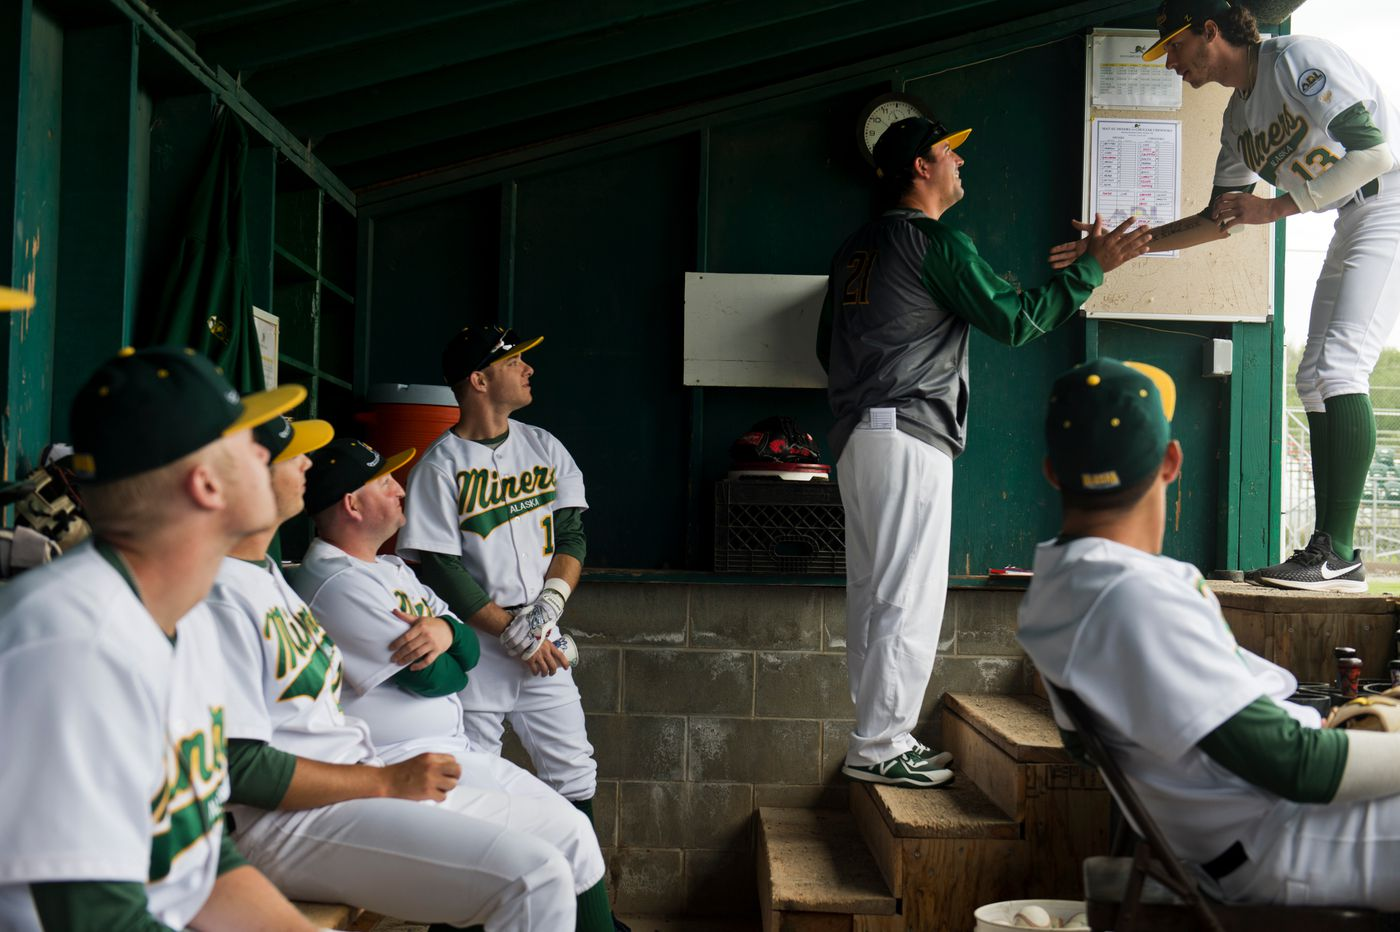 Miners coach Tyler LeBrun slaps hands with pitcher Randy Abshier, right. (Marc Lester / ADN)